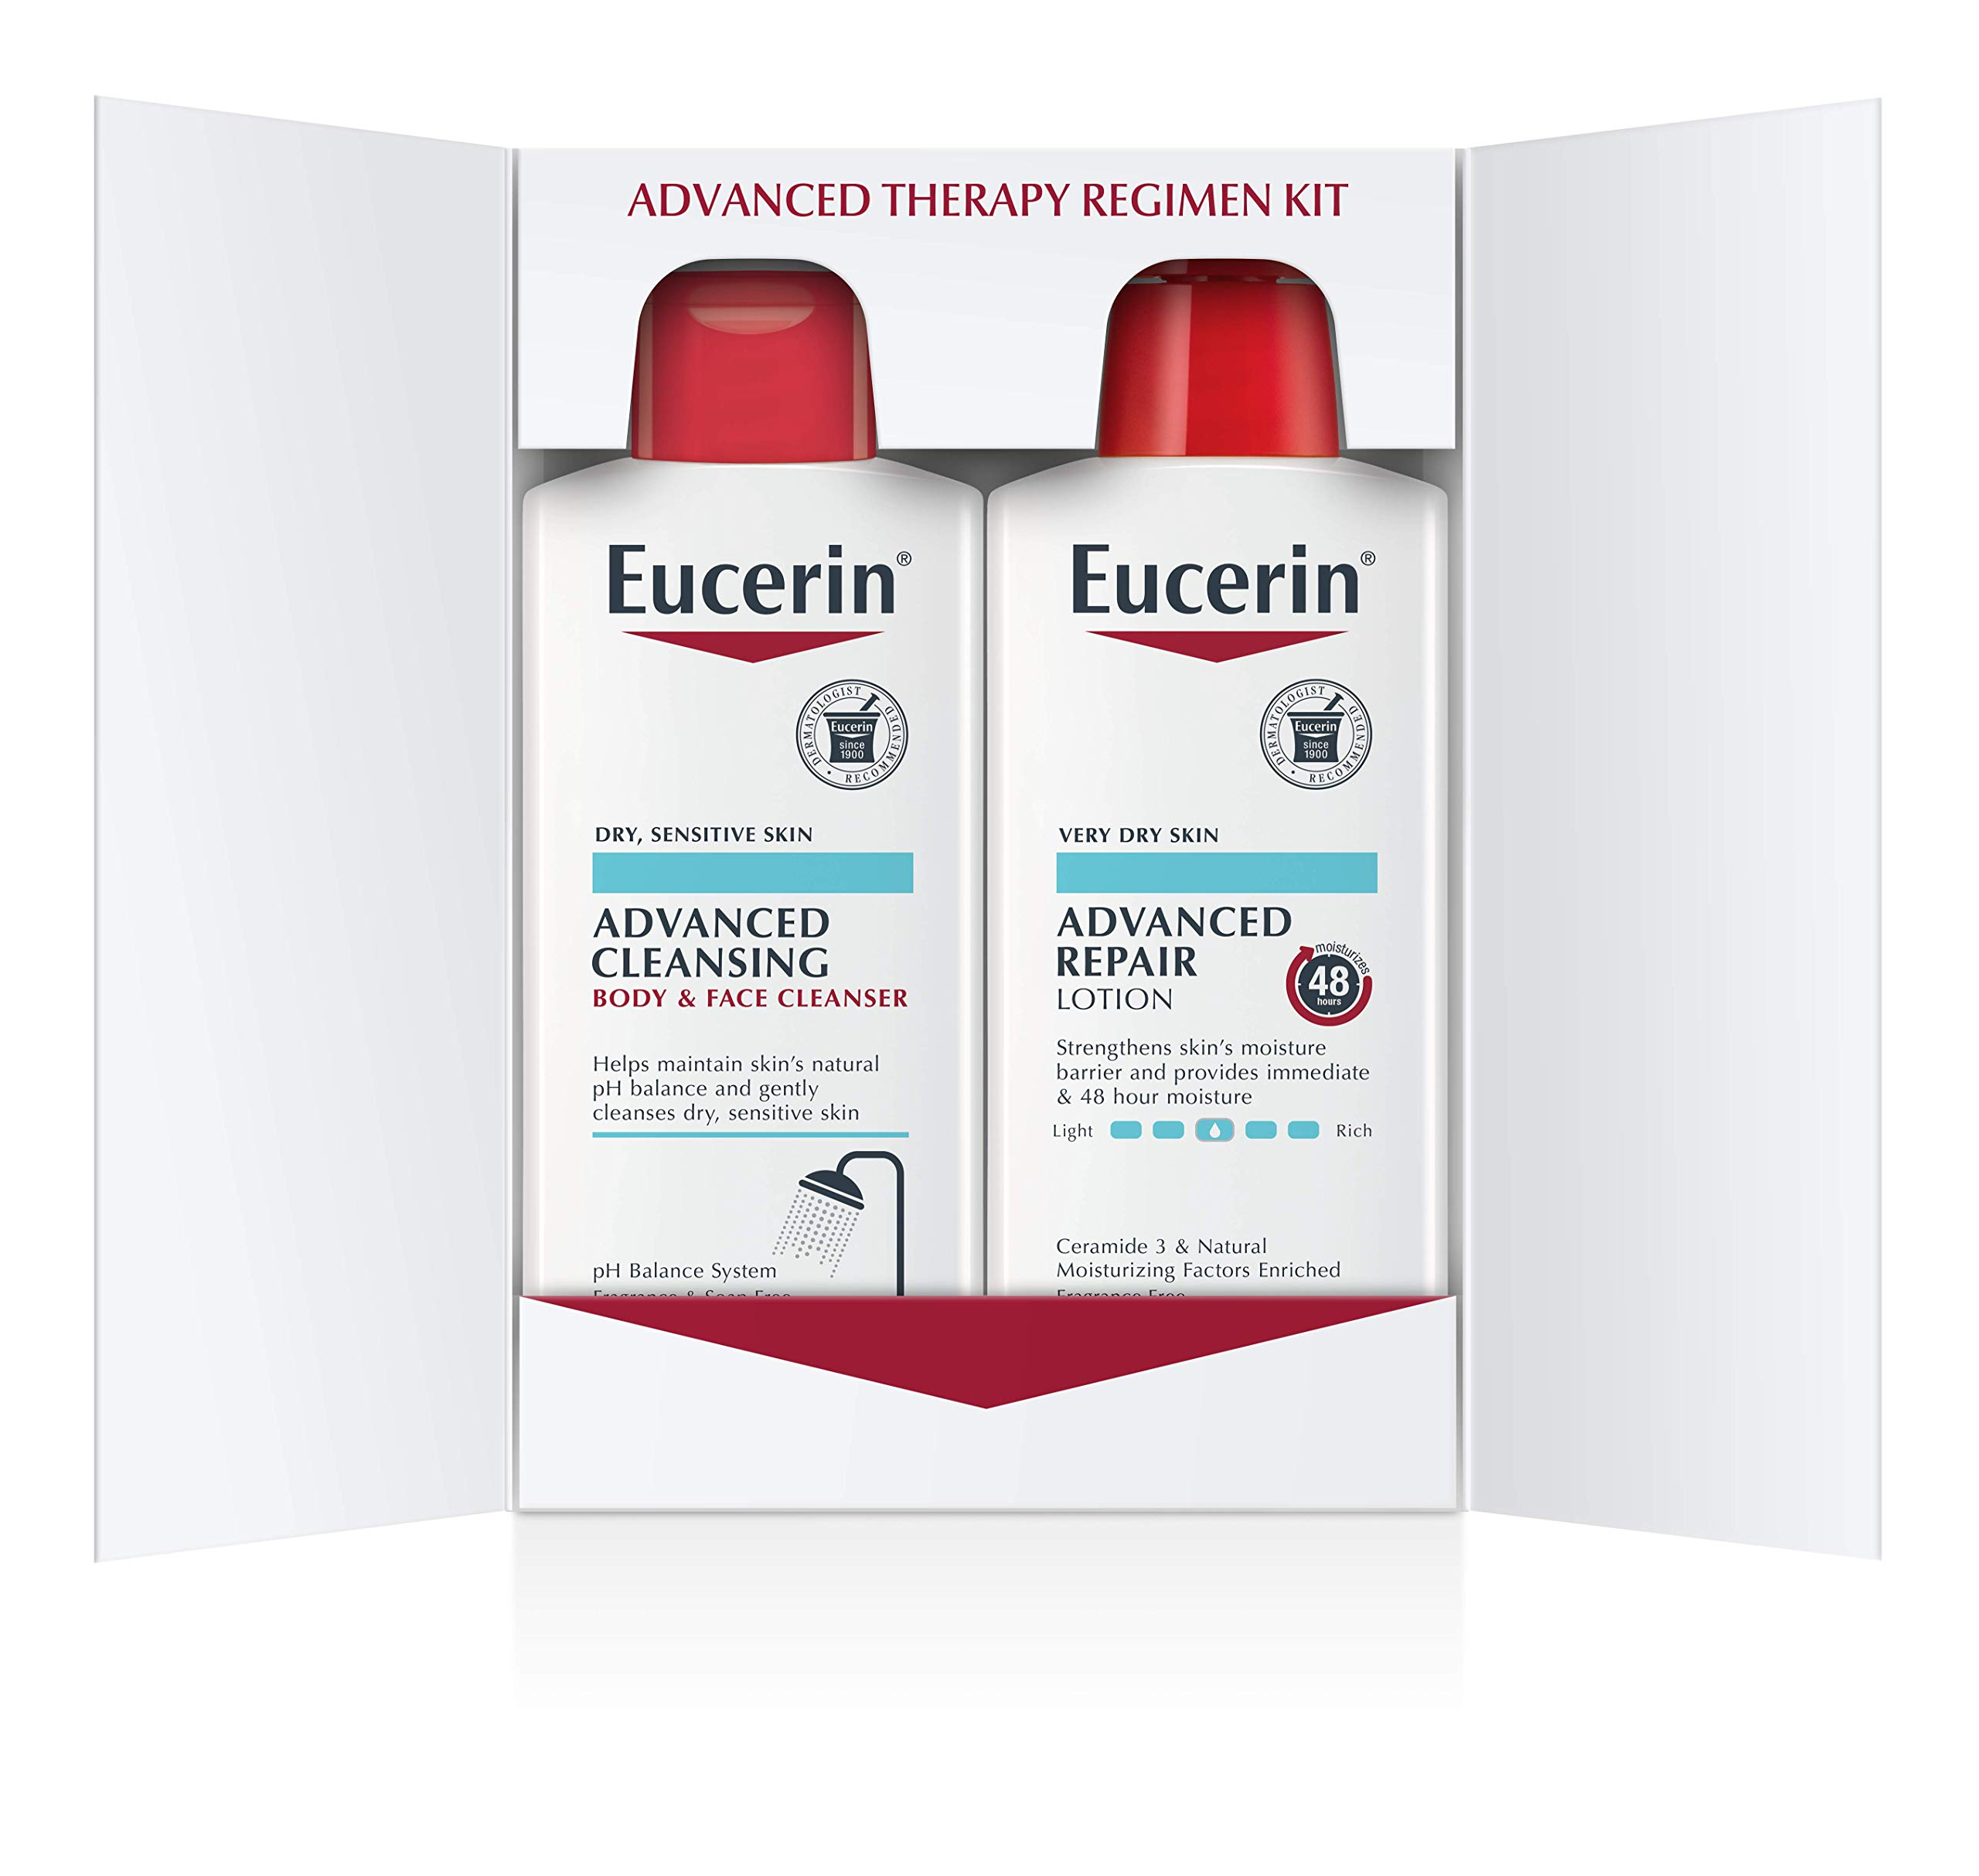 Eucerin Advanced Repair Regimen Pack - Advanced Repair Body Lotion & Advanced Cleansing Face and Body Wash - 16.9 oz Bottles, 2 Pack